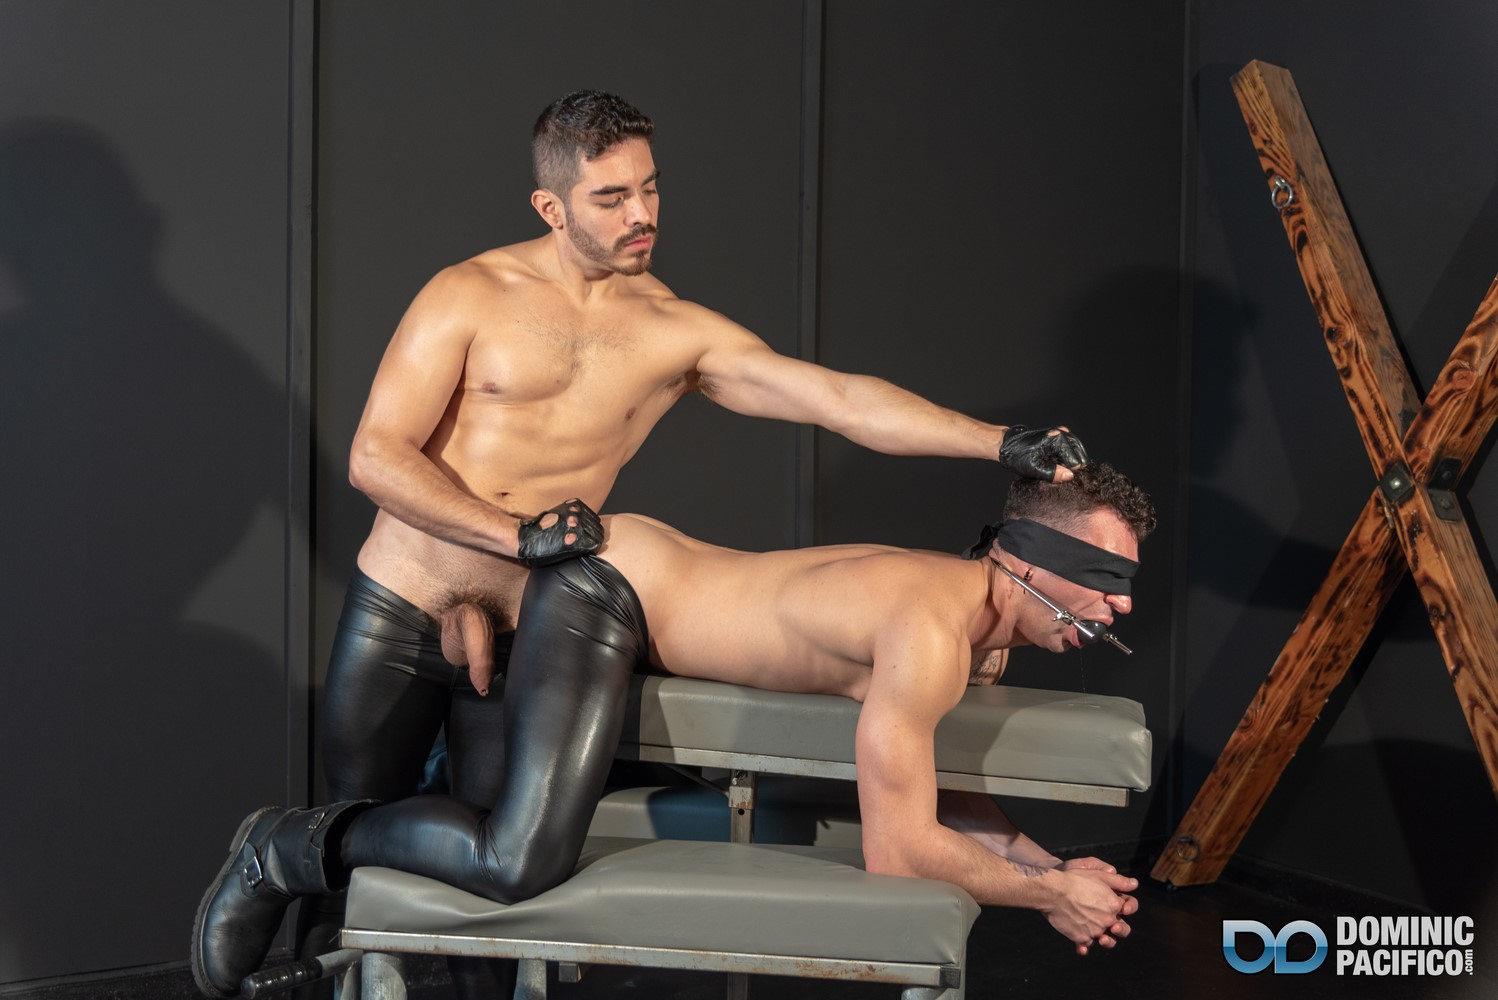 Cazden Hunter enters the black room to find Ian Greene gagged